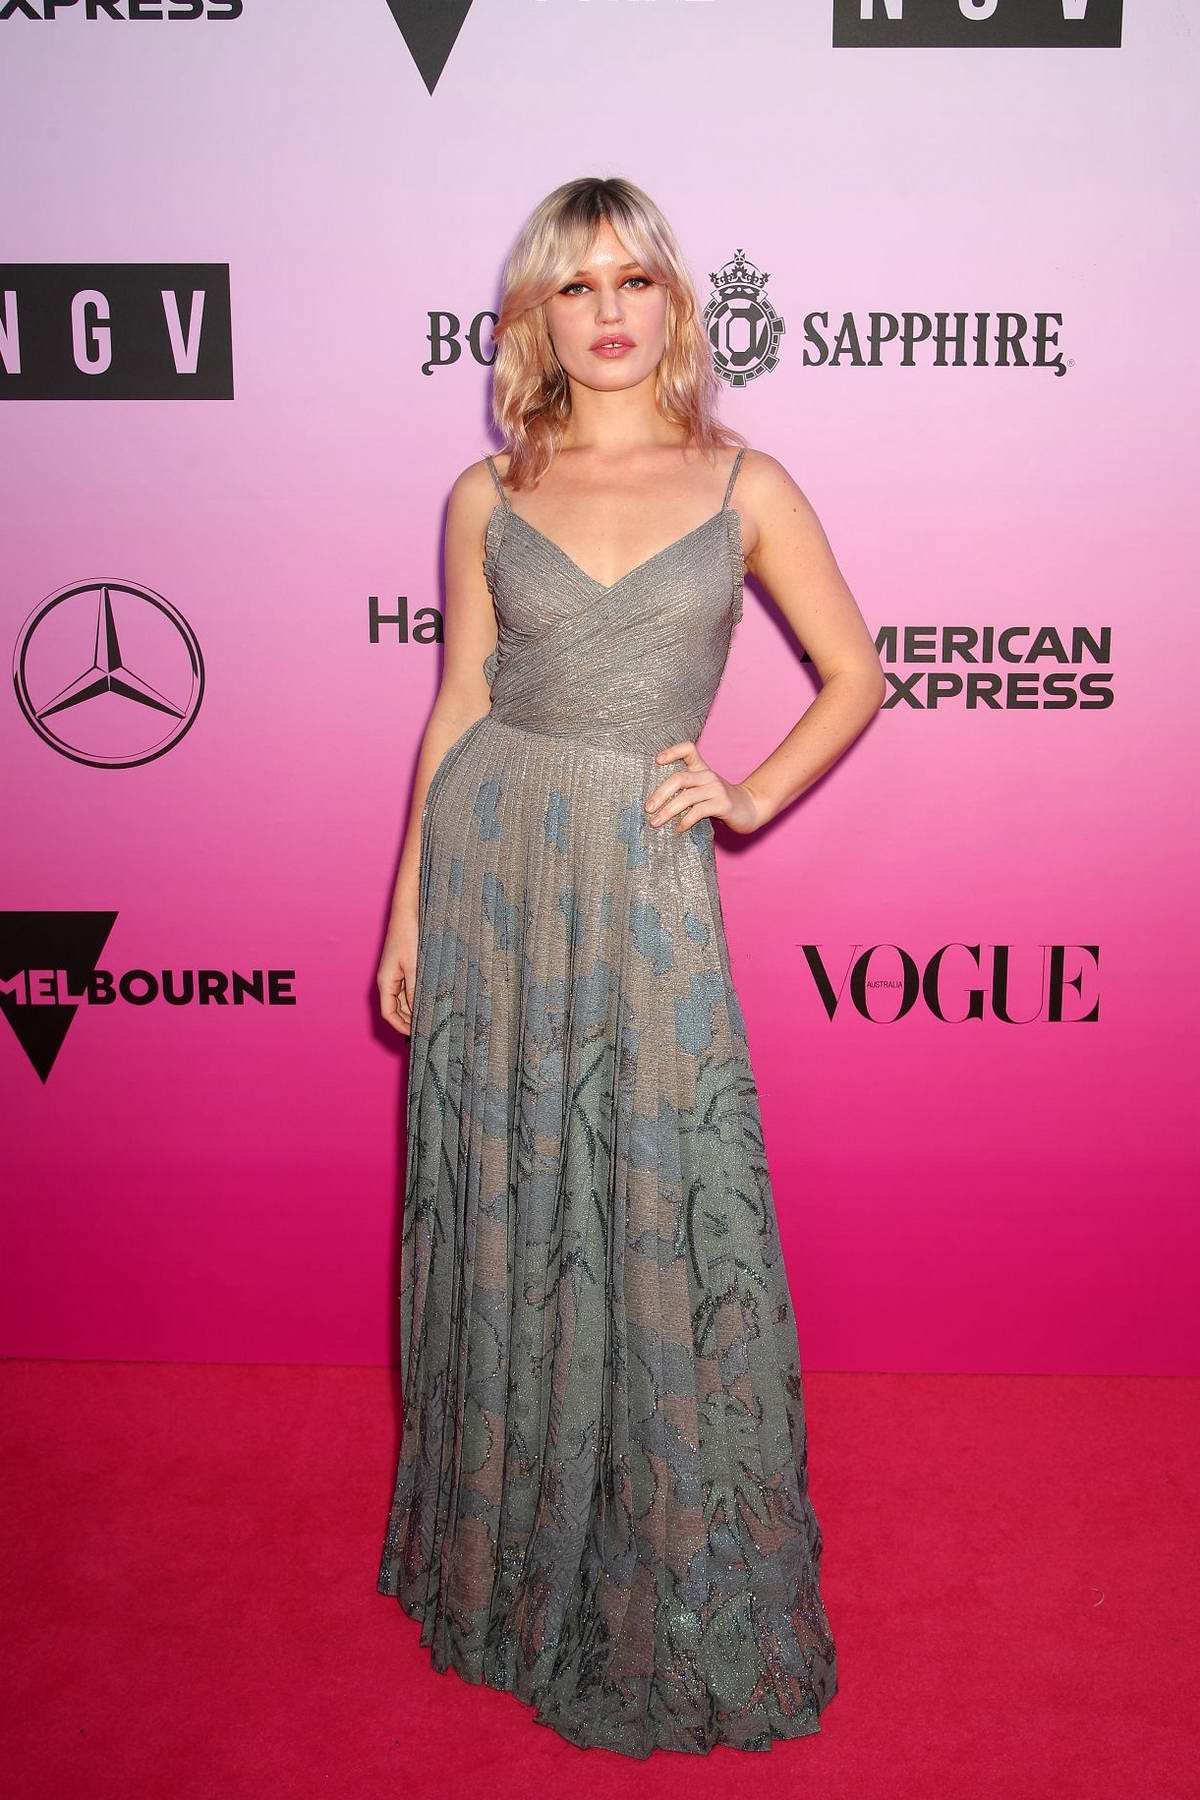 Georgia May Jagger attends the NGV Gala in Melbourne, Australia